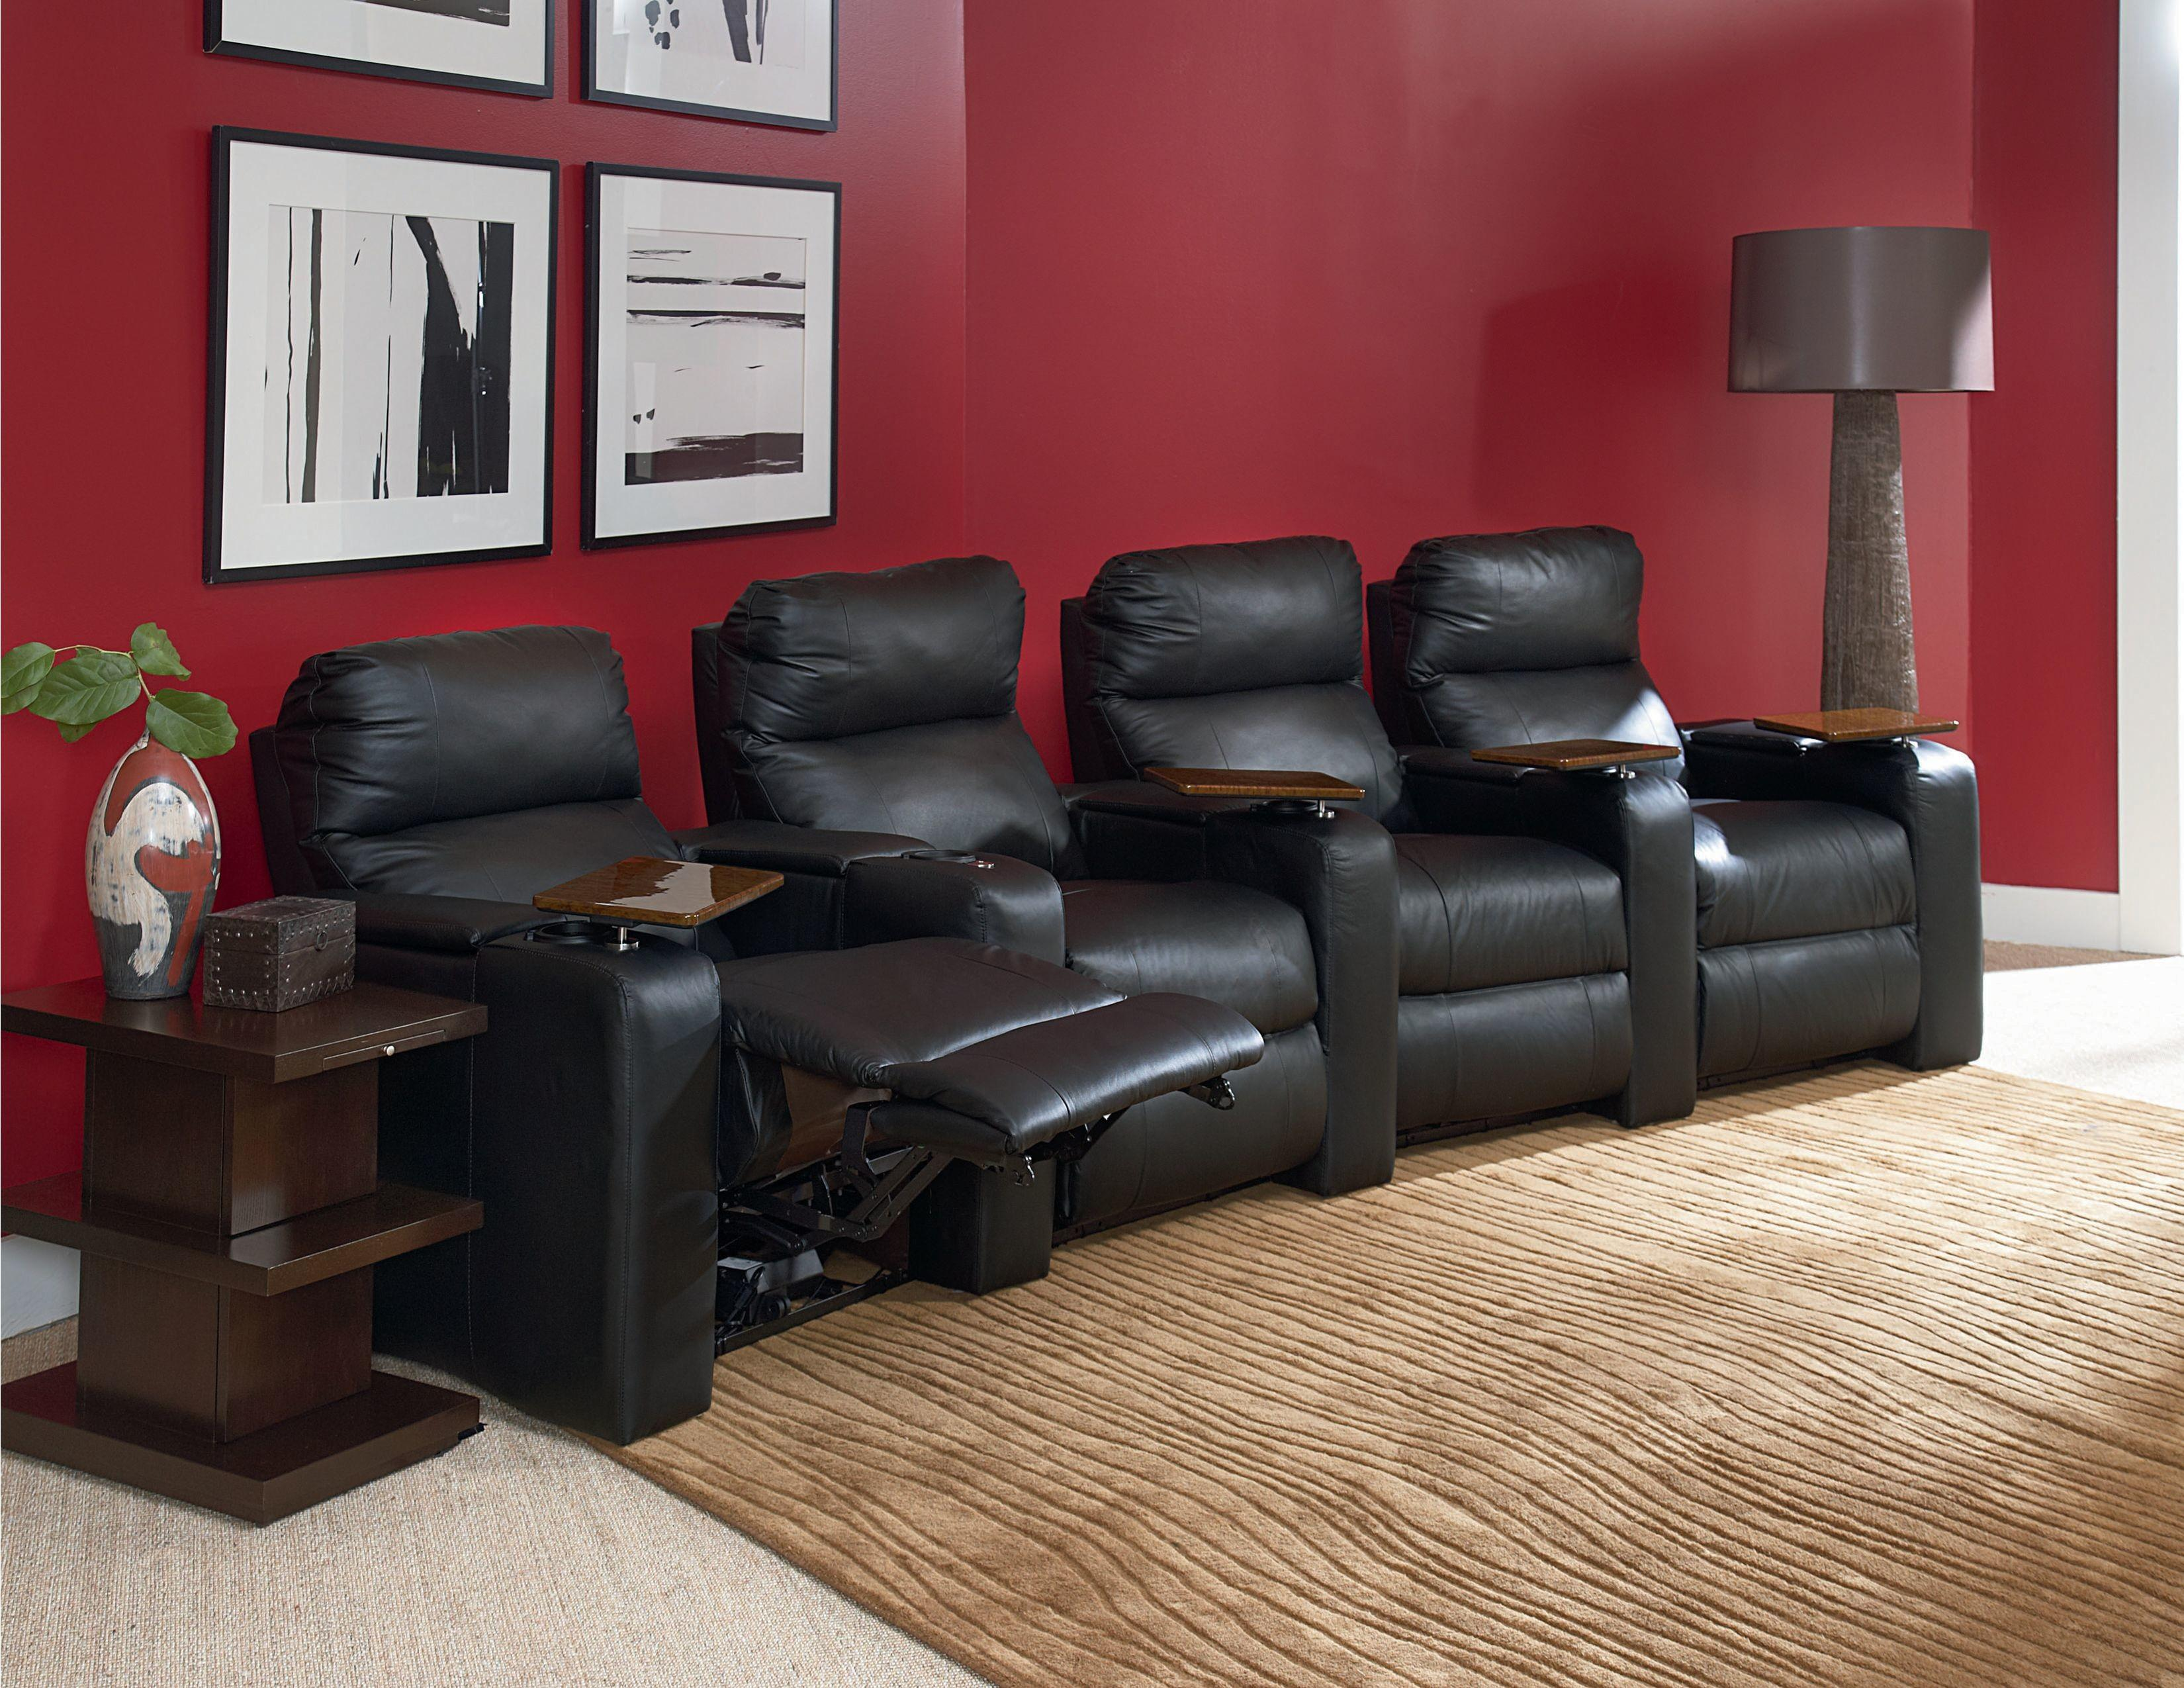 Home Theater Movie Rooms Classical Hollywood Cinema